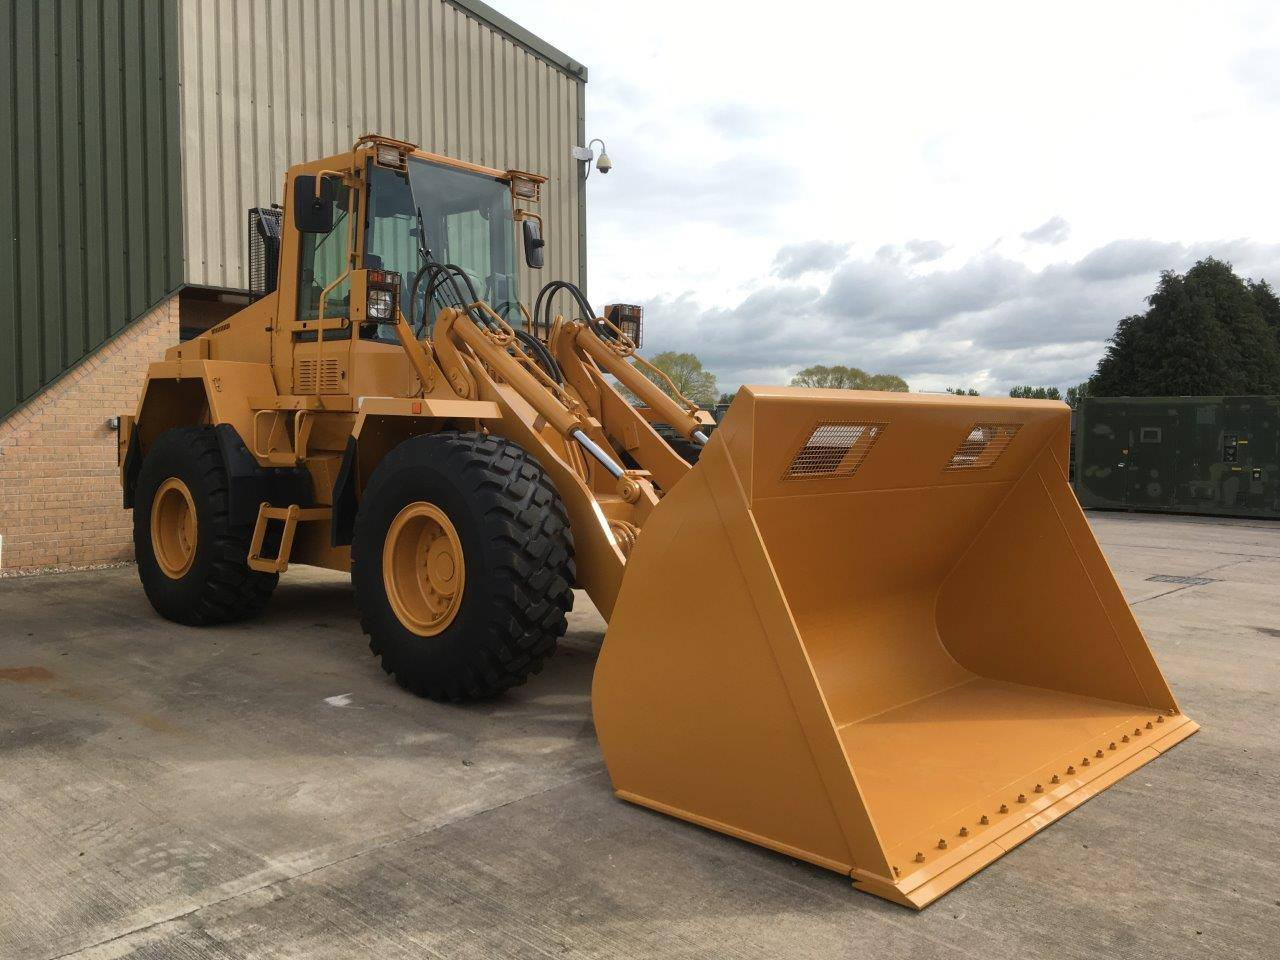 Case 721 CXT wheeled loader | used military vehicles for sale